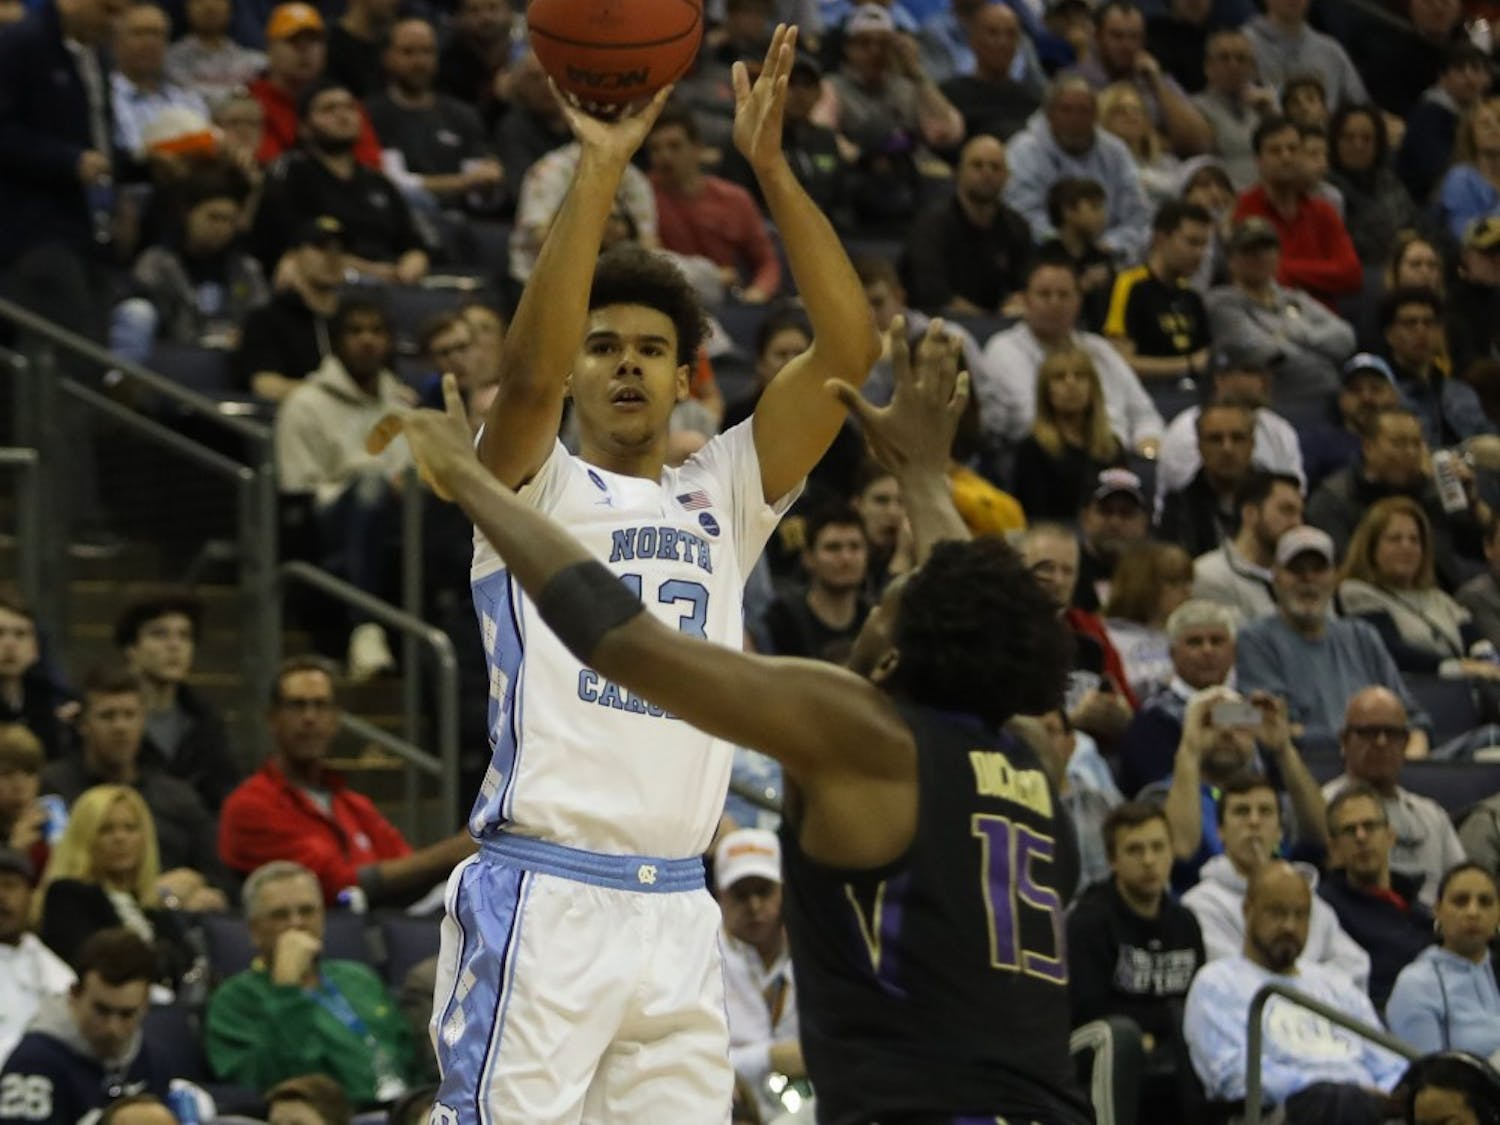 Graduate guard Cam Johnson (13) shoots a three-pointer against Washington in the second round of the NCAA tournament at Nationwide Arena in Columbus, OH on Sunday, March 24, 2019. UNC defeated Washington 81-59. Johnson scored 13 points for the Tar Heels.